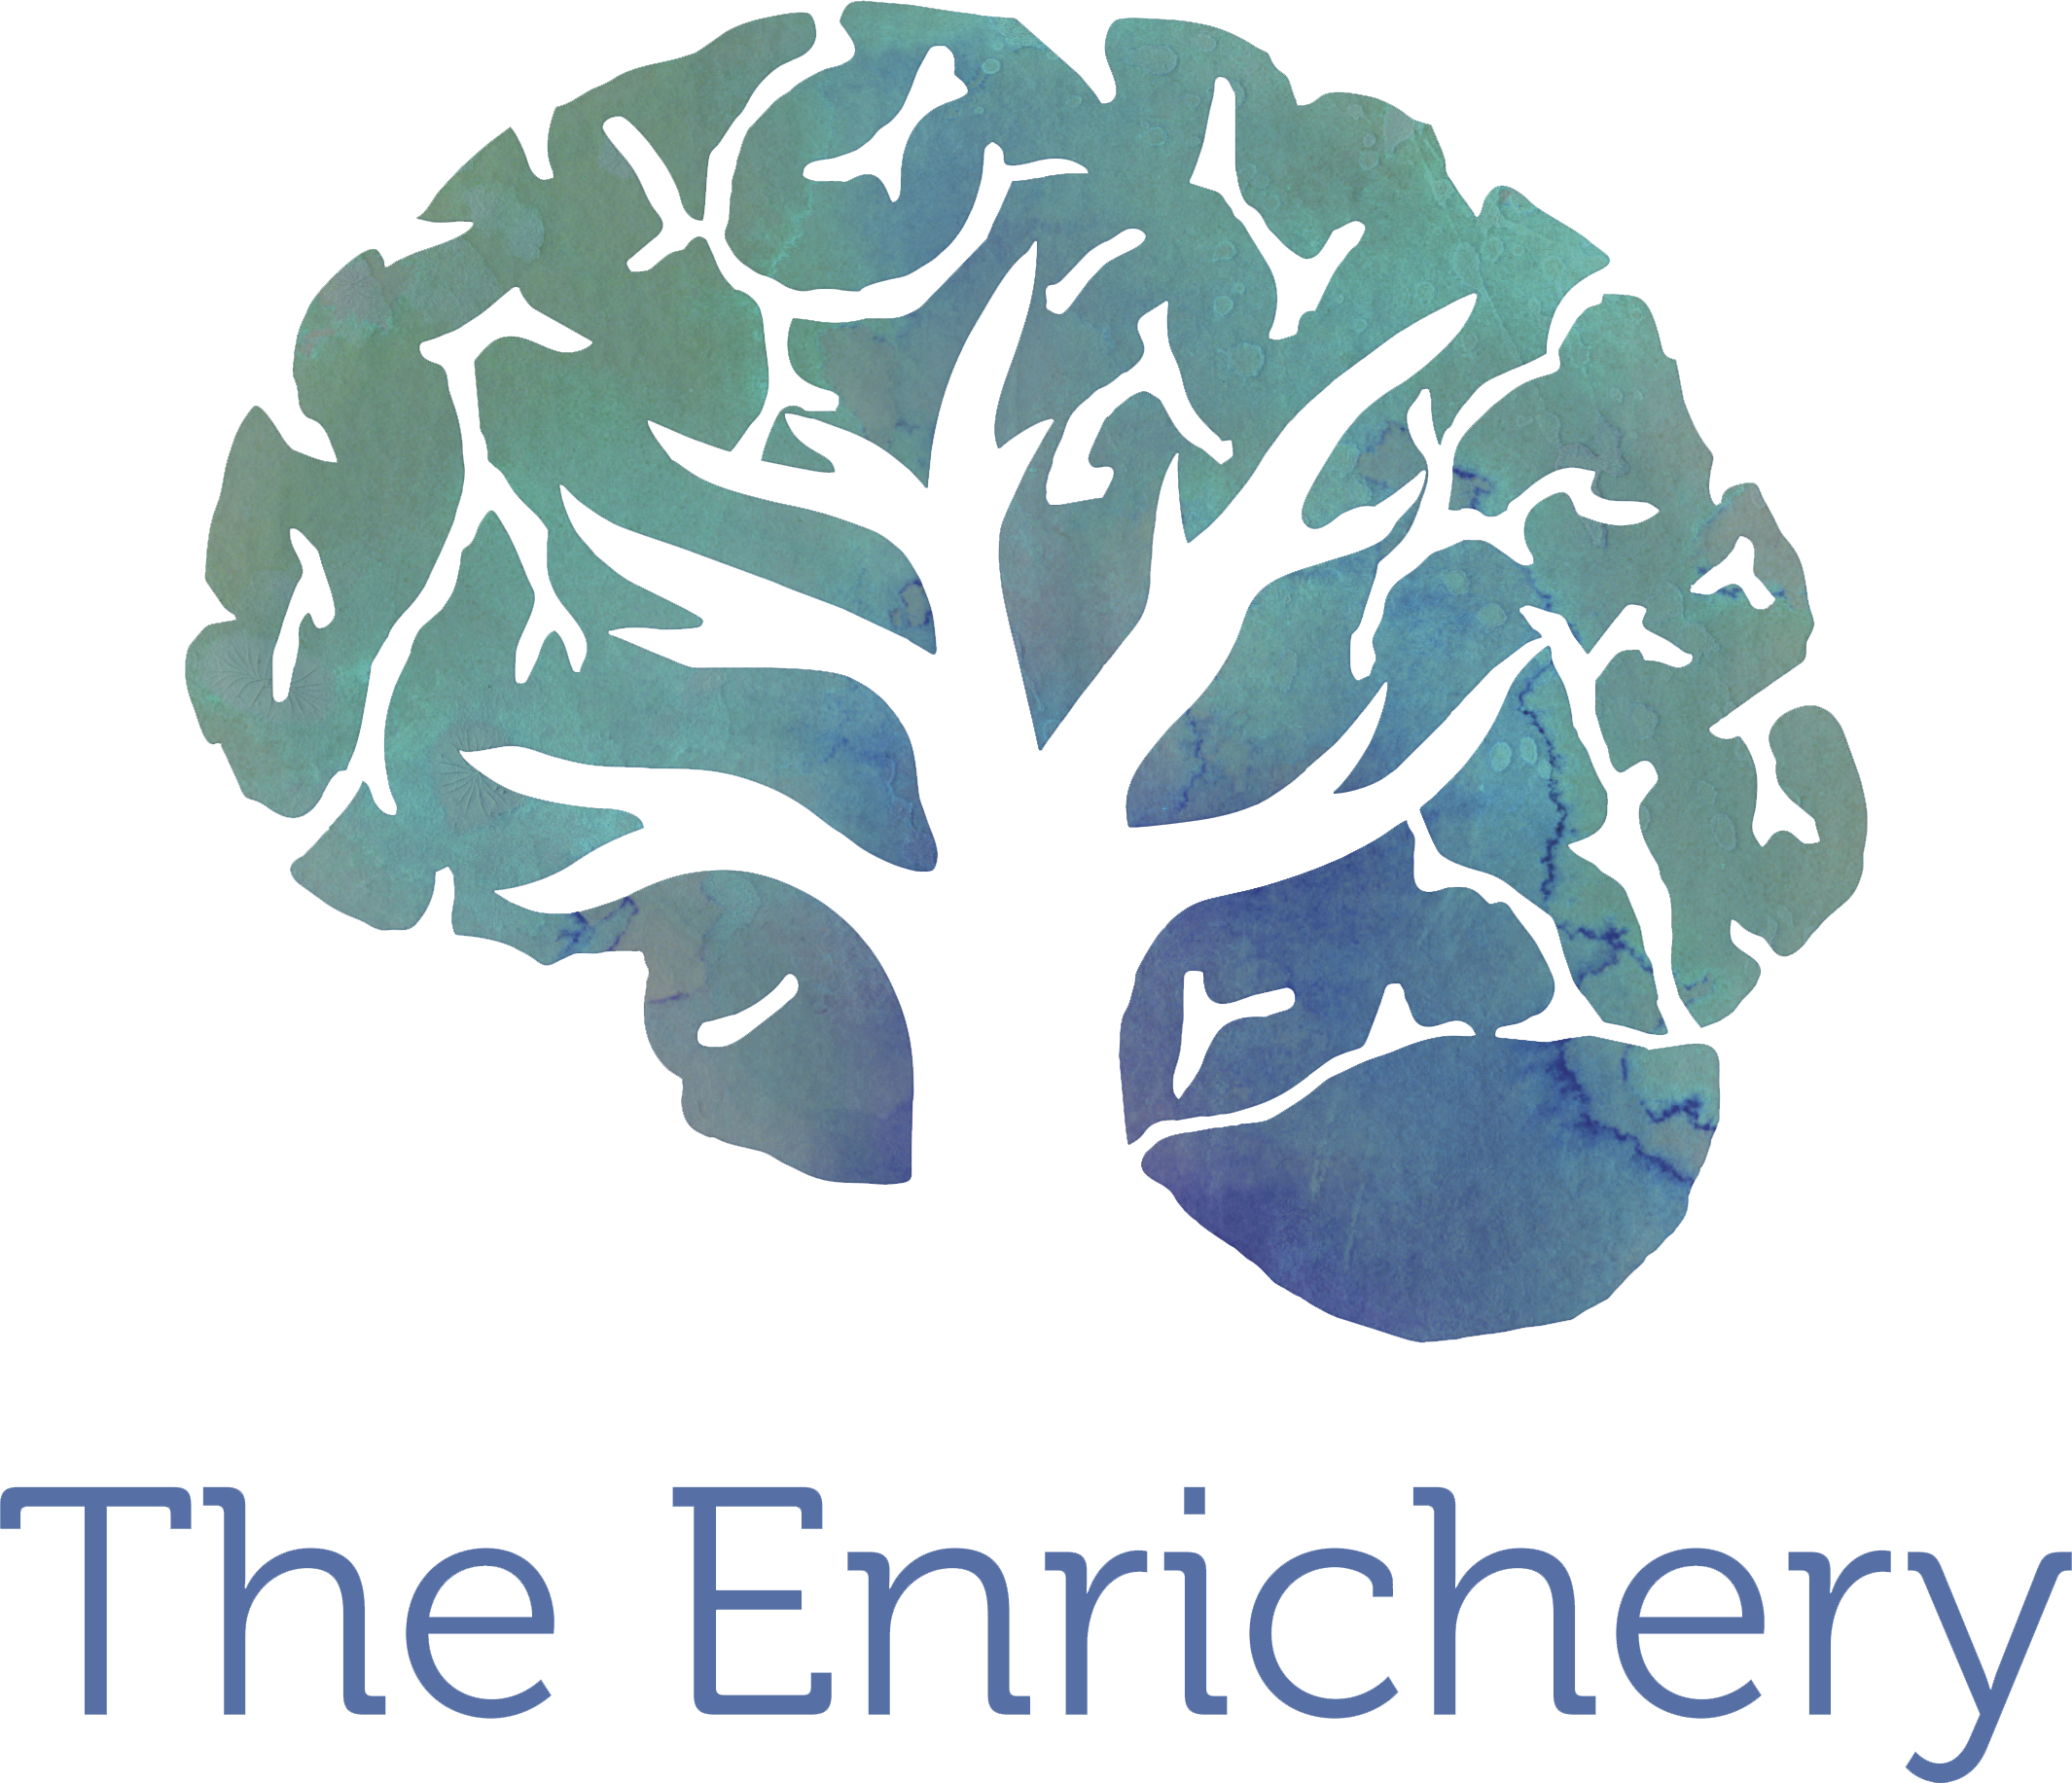 The Enrichery